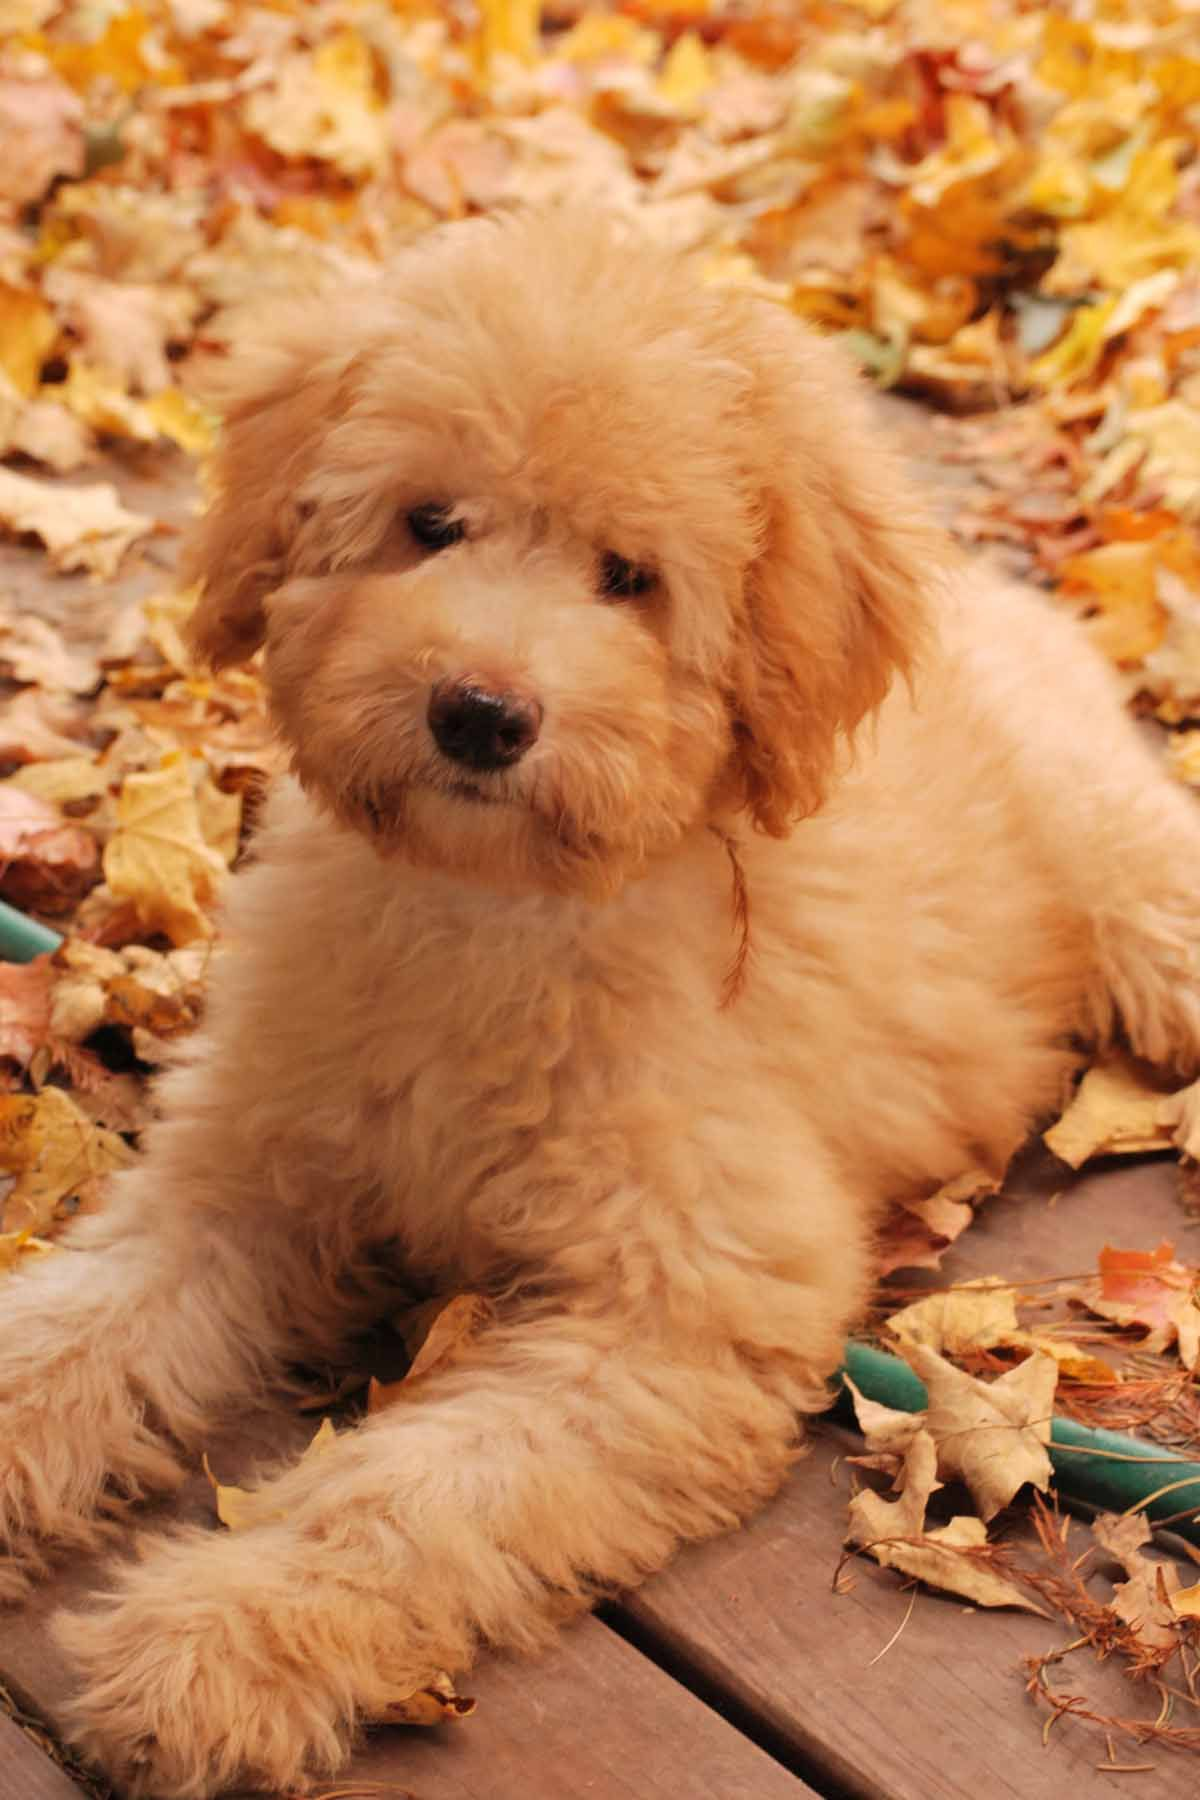 #labradoodle #dogs #cute this will be mine someday!